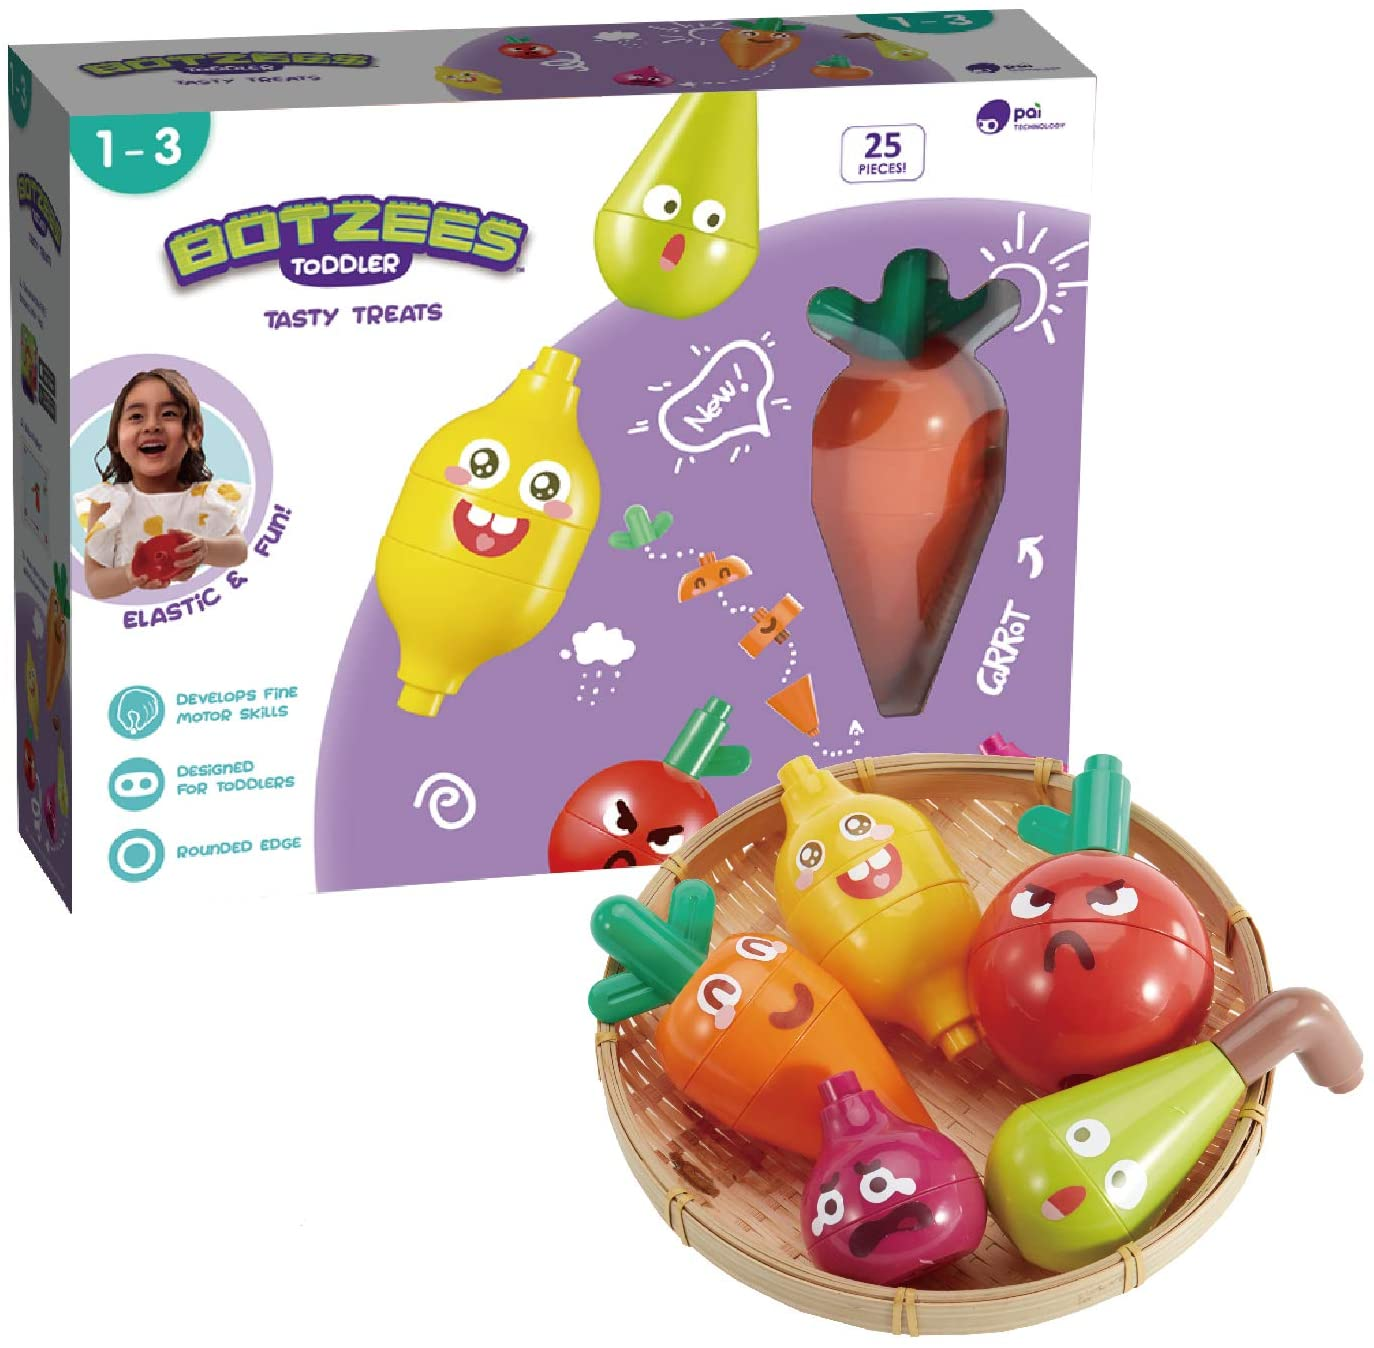 Botzees Toddler - Tasty Treats